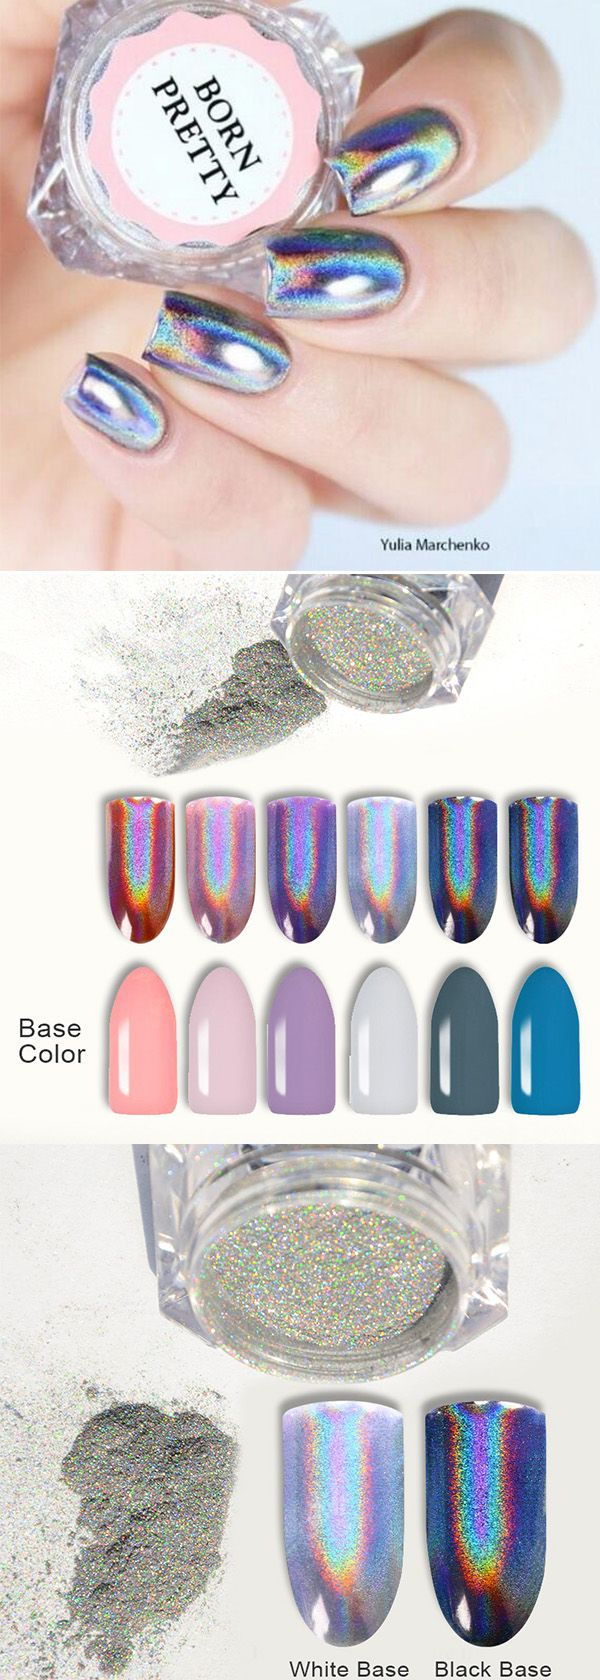 #holographicnails, #bornpretty hottest glitter nails, nice rainbow effect, try yours soon, see more details in bornprettystore.com